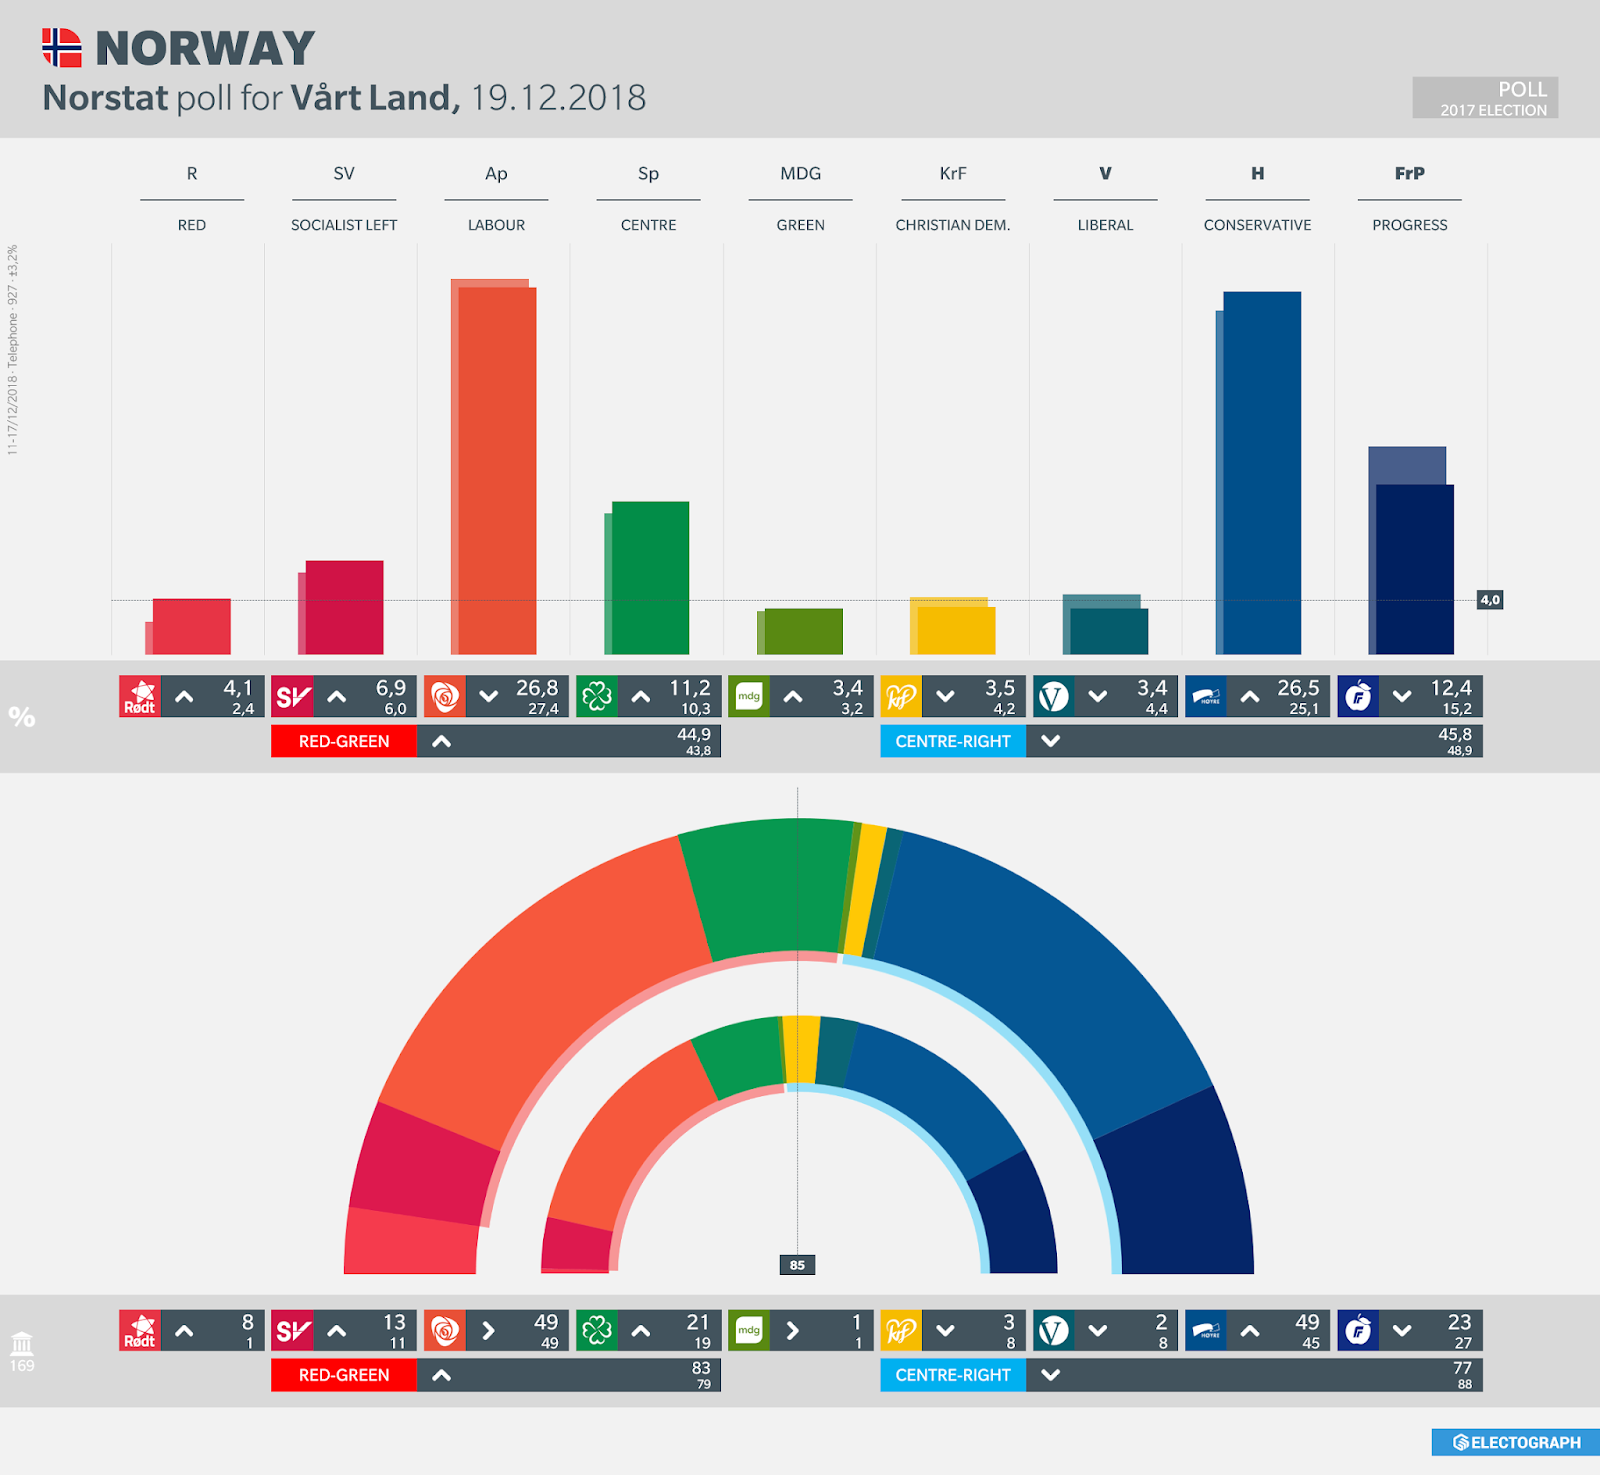 NORWAY: Norstat poll chart for Vårt Land, 19 December 2018